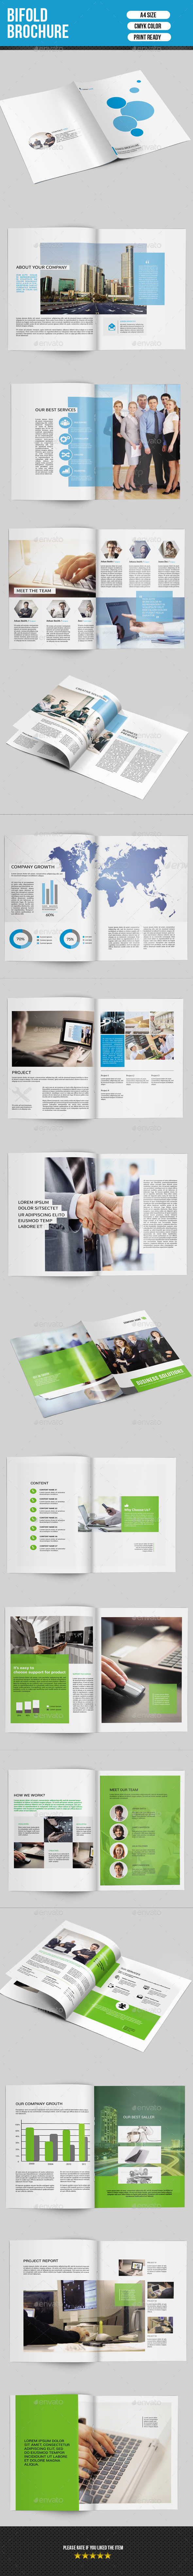 Corporate Bifold Brochure Bundle-V06 - Corporate Brochures